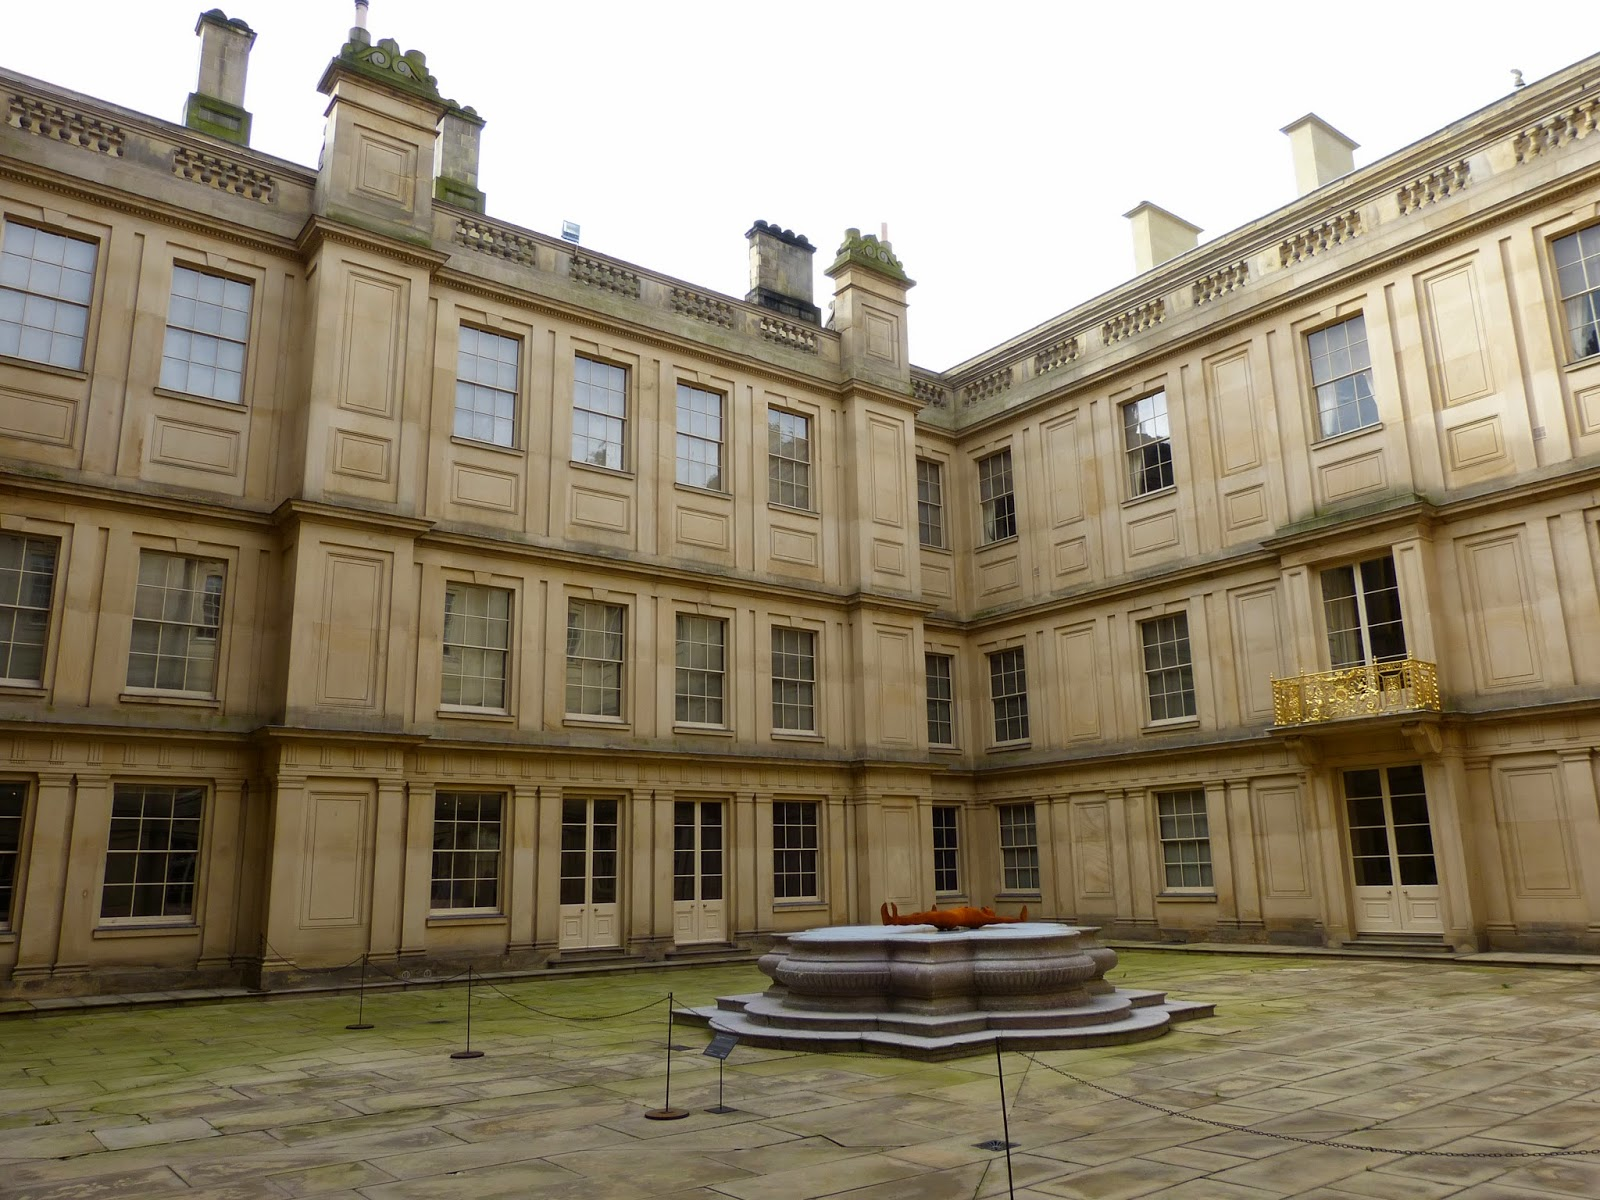 The Courtyard, Chatsworth